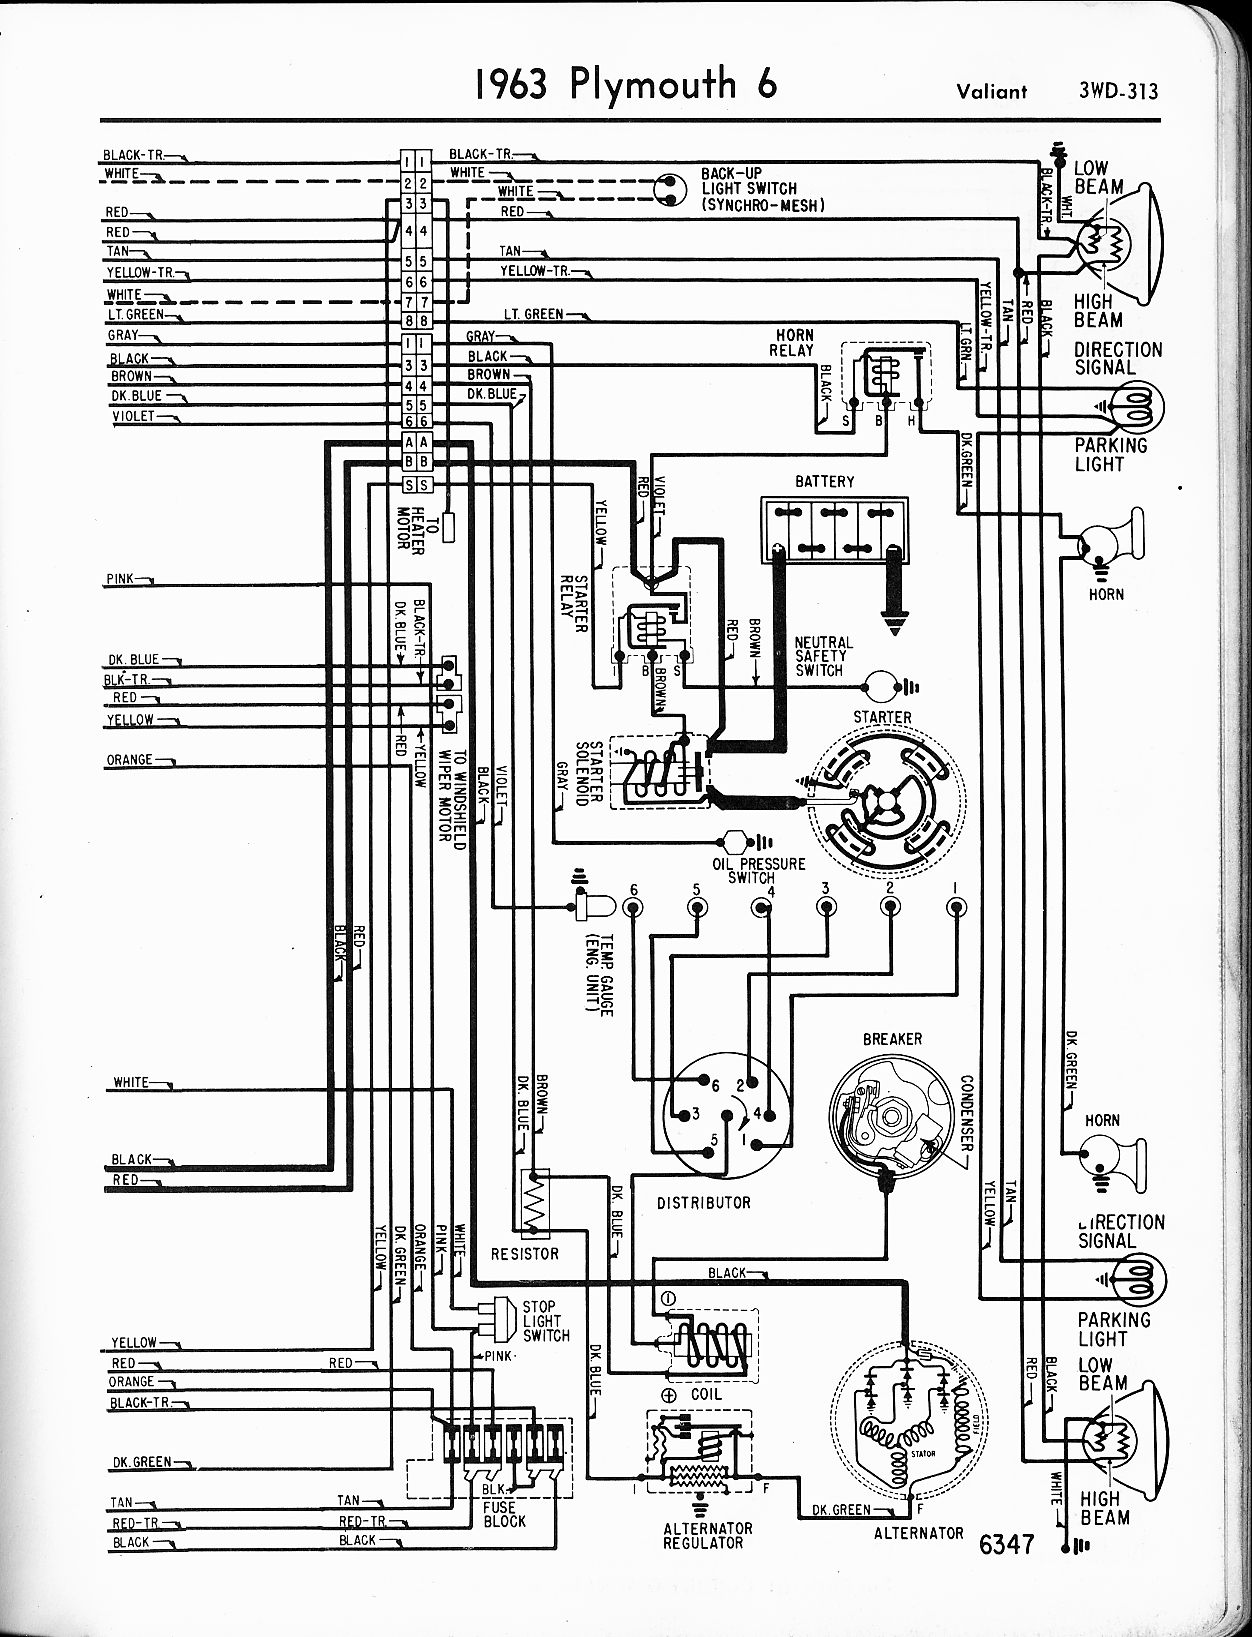 Showthread likewise Gm Steering Column Wiring Diagram likewise 221450506657449789 furthermore Dodge 318 Engine Diagram also 1970 Cadillac Wiring Diagrams. on 1970 plymouth wiring diagram